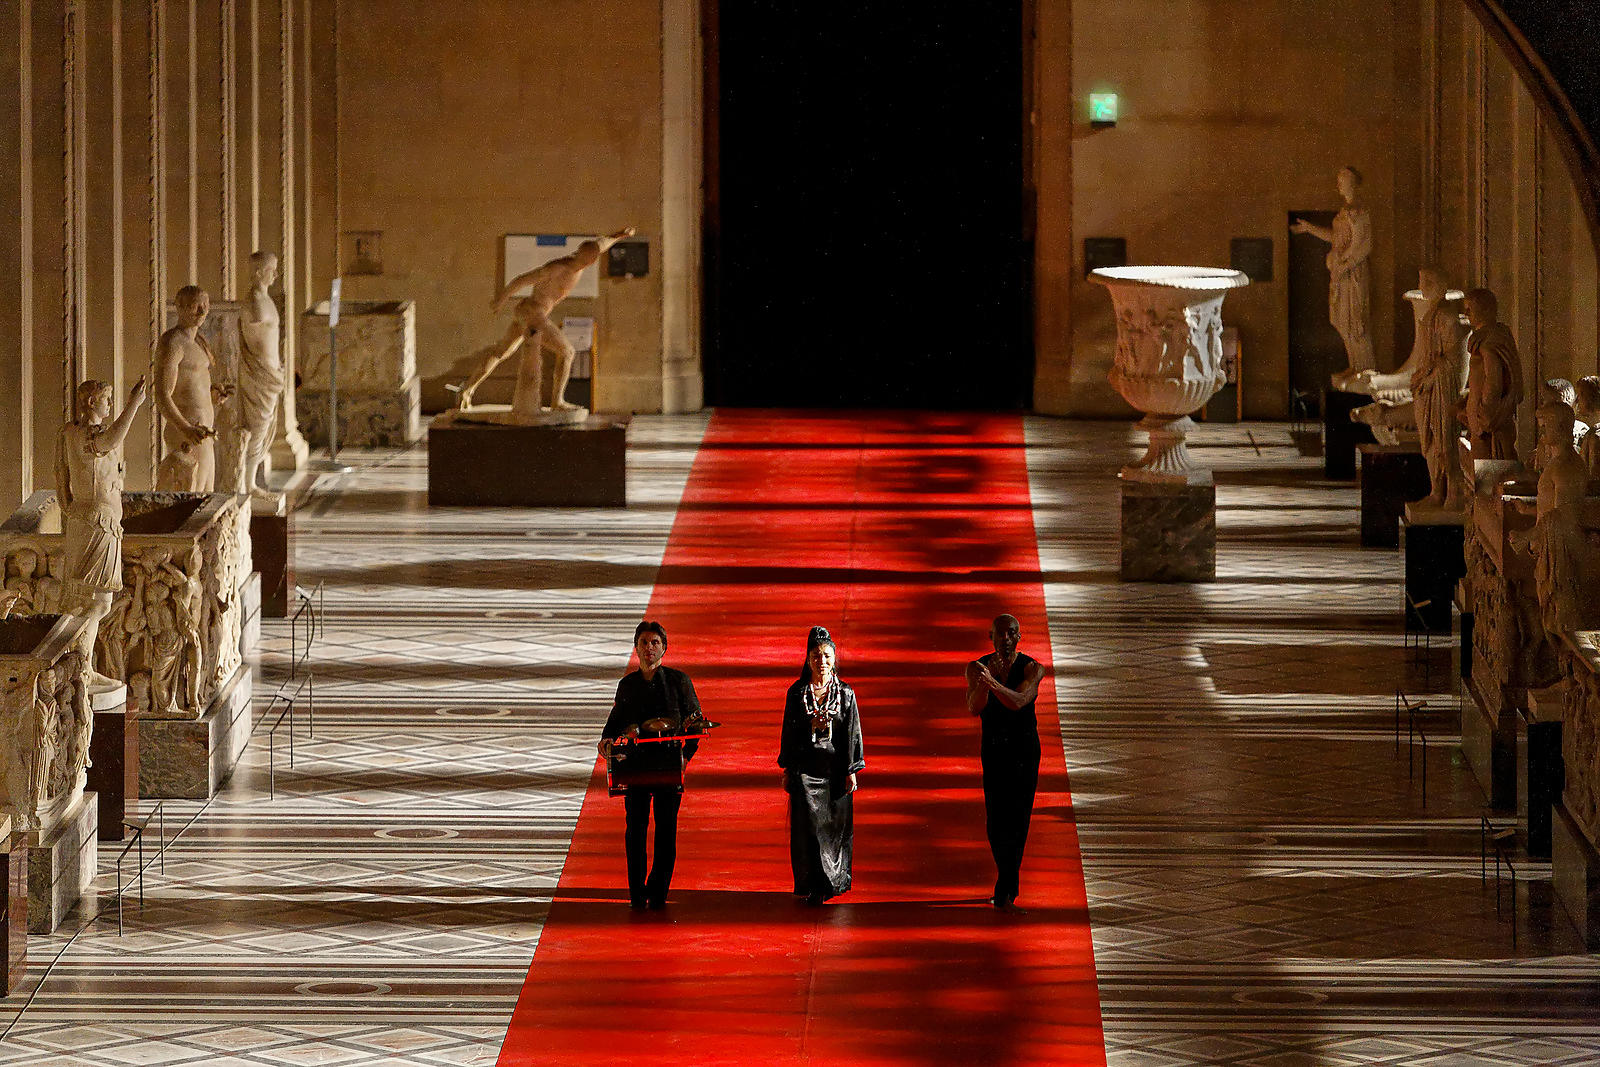 Walking the line - Bill T. Jones - Musée du Louvre